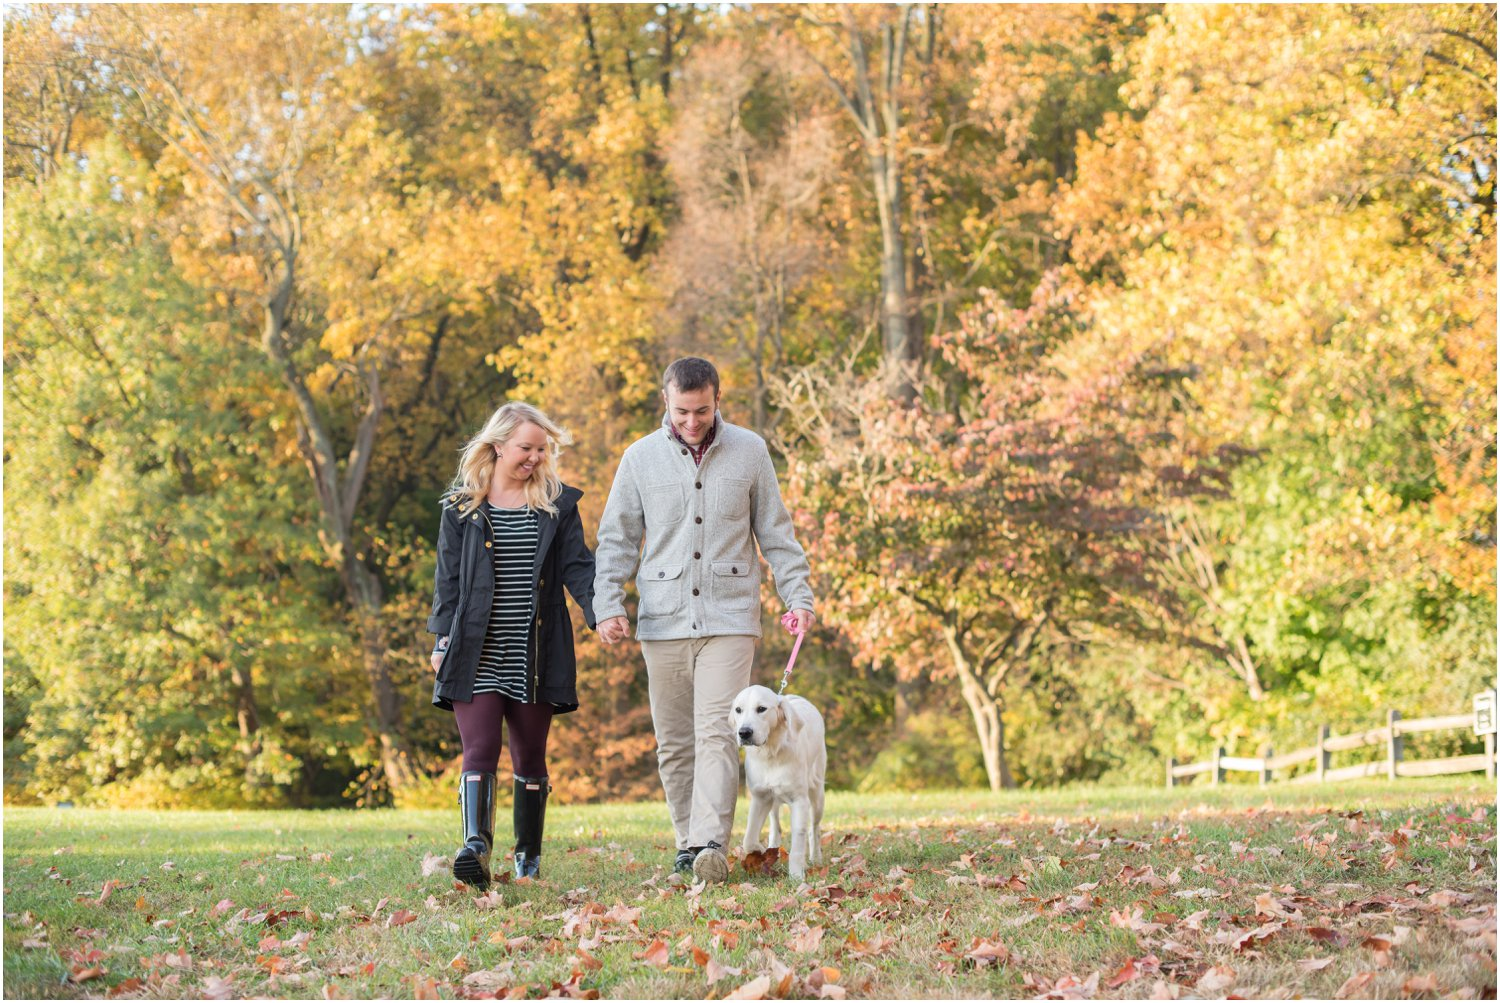 Beachmont-Christian-Camp-Fall-Engagement-Session-Chelsea-Blanch-Photography-4